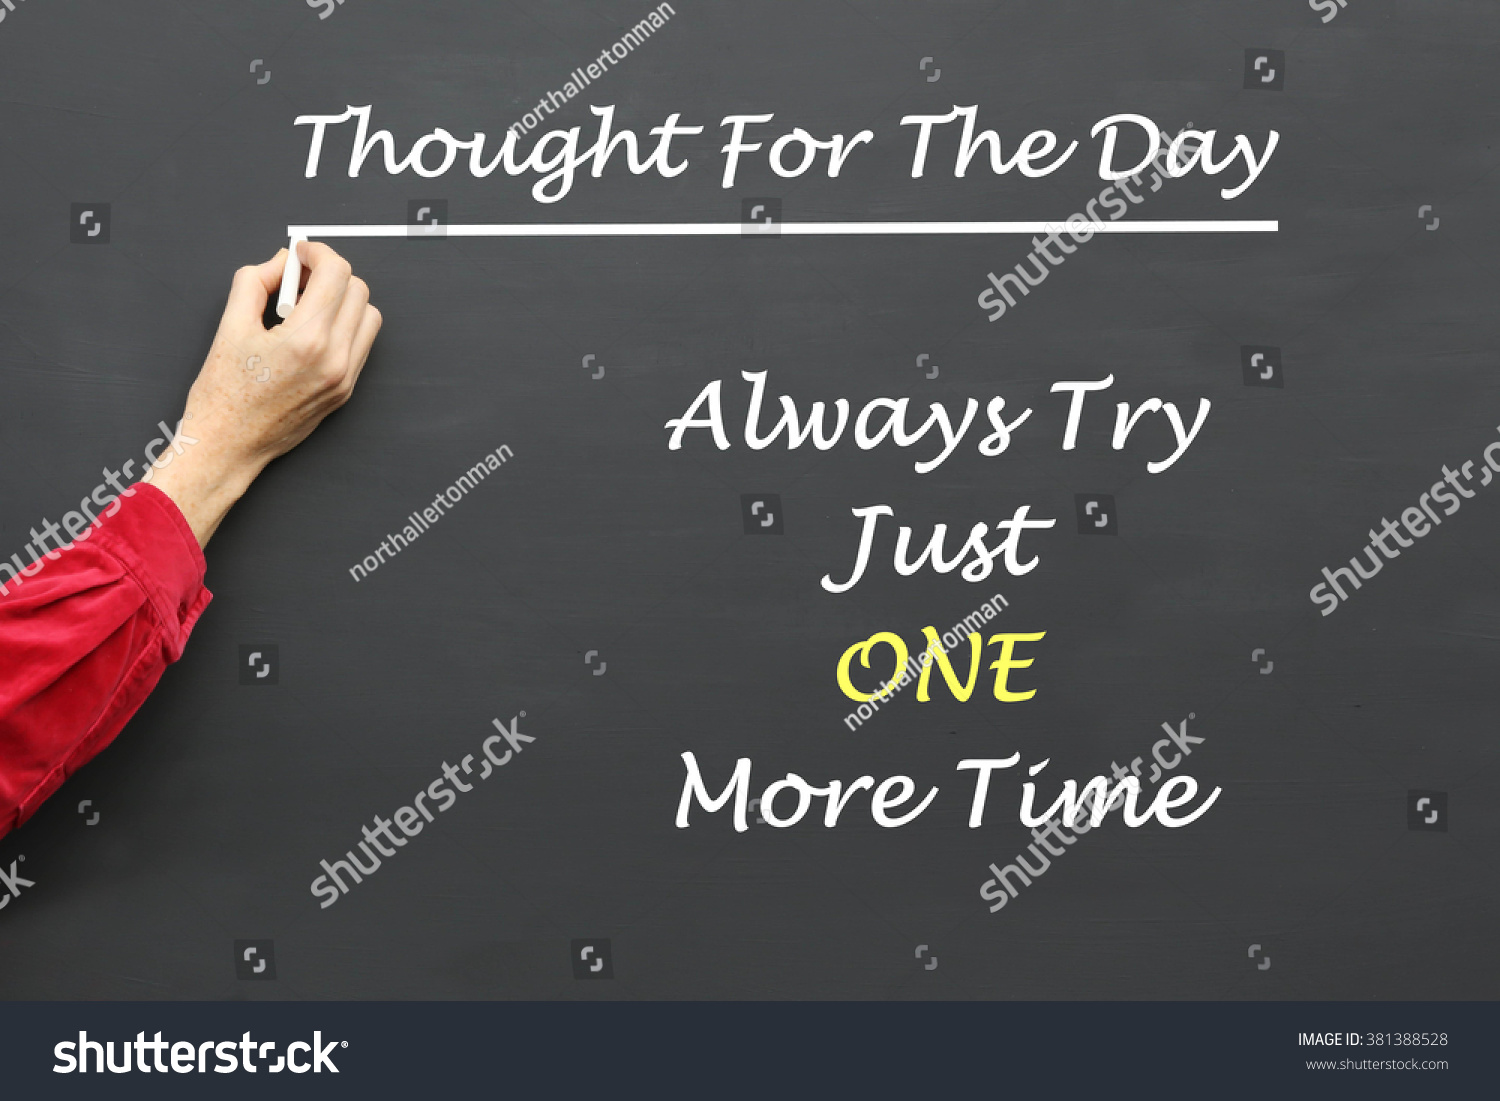 Inspirational Thought For The Day Inspirational Thought Day Message Always Try Stock Photo 381388528